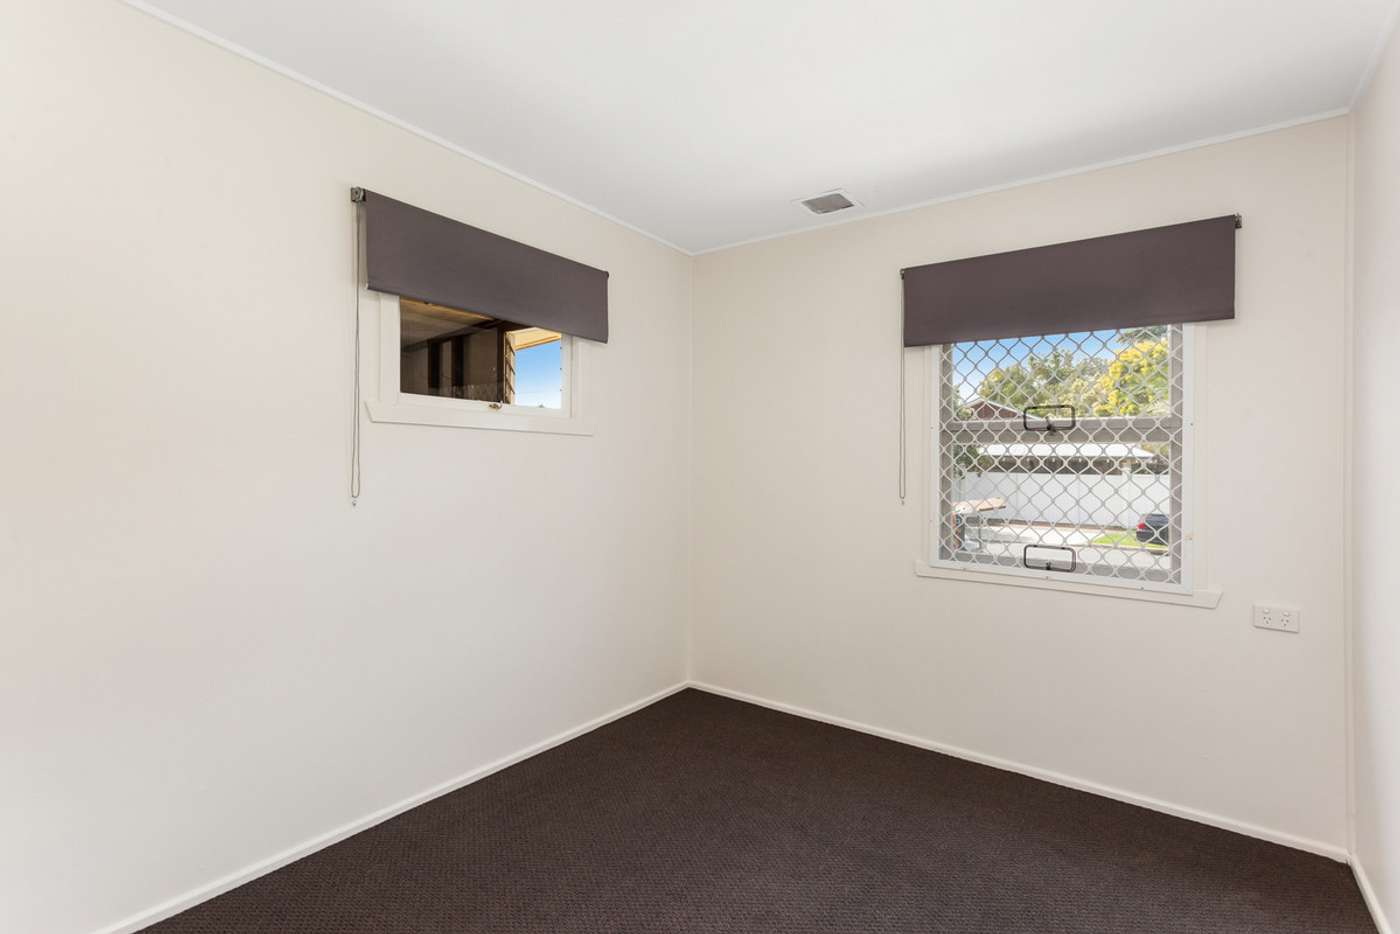 Sixth view of Homely house listing, 14 Bunyip Street, Burleigh Heads QLD 4220